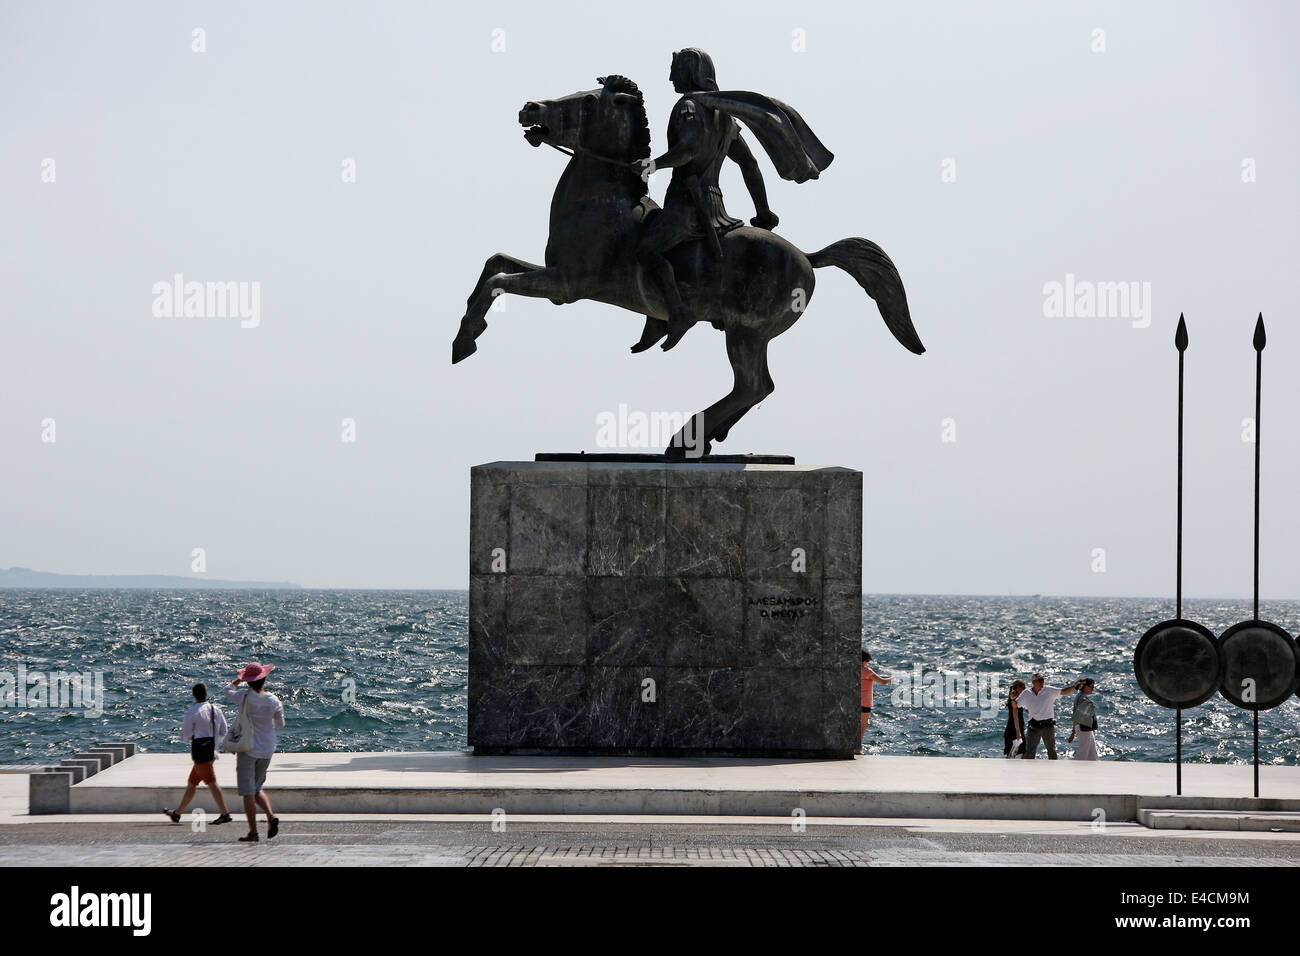 Tourists walk past Alexander the Great statue in Thessaloniki, Greece - Stock Image